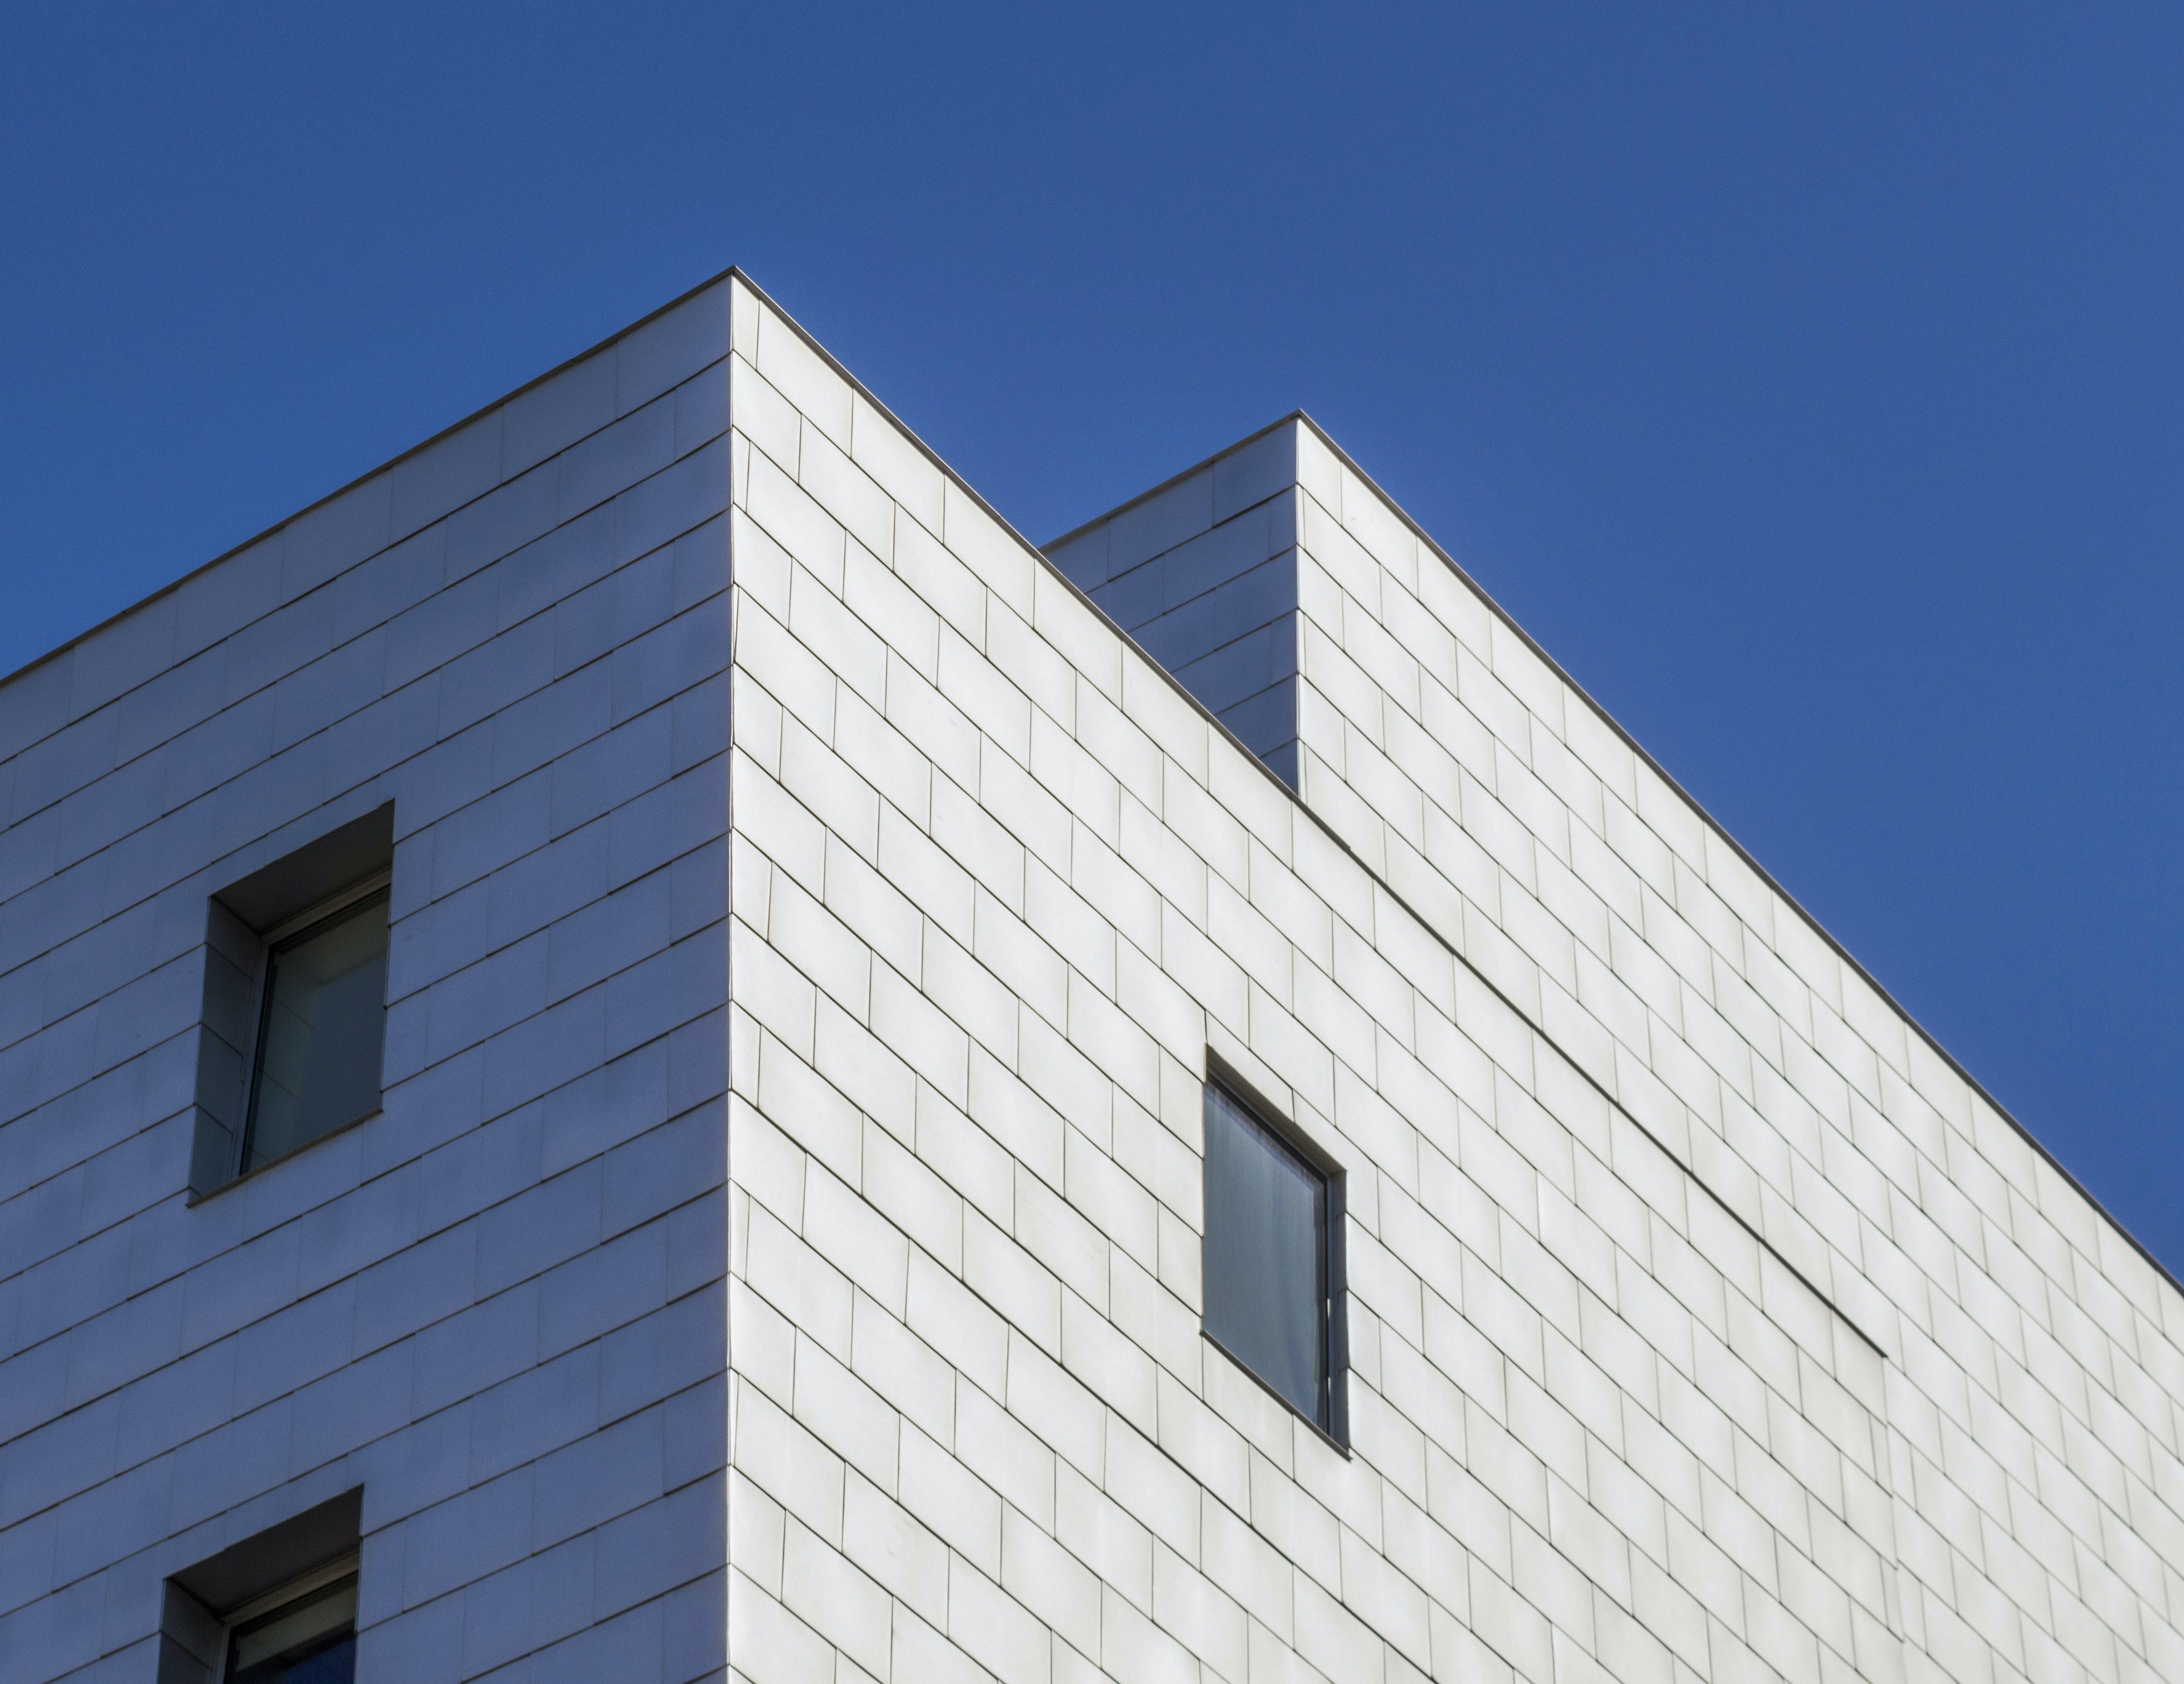 Worm's Eye View Photography of White Concrete Building